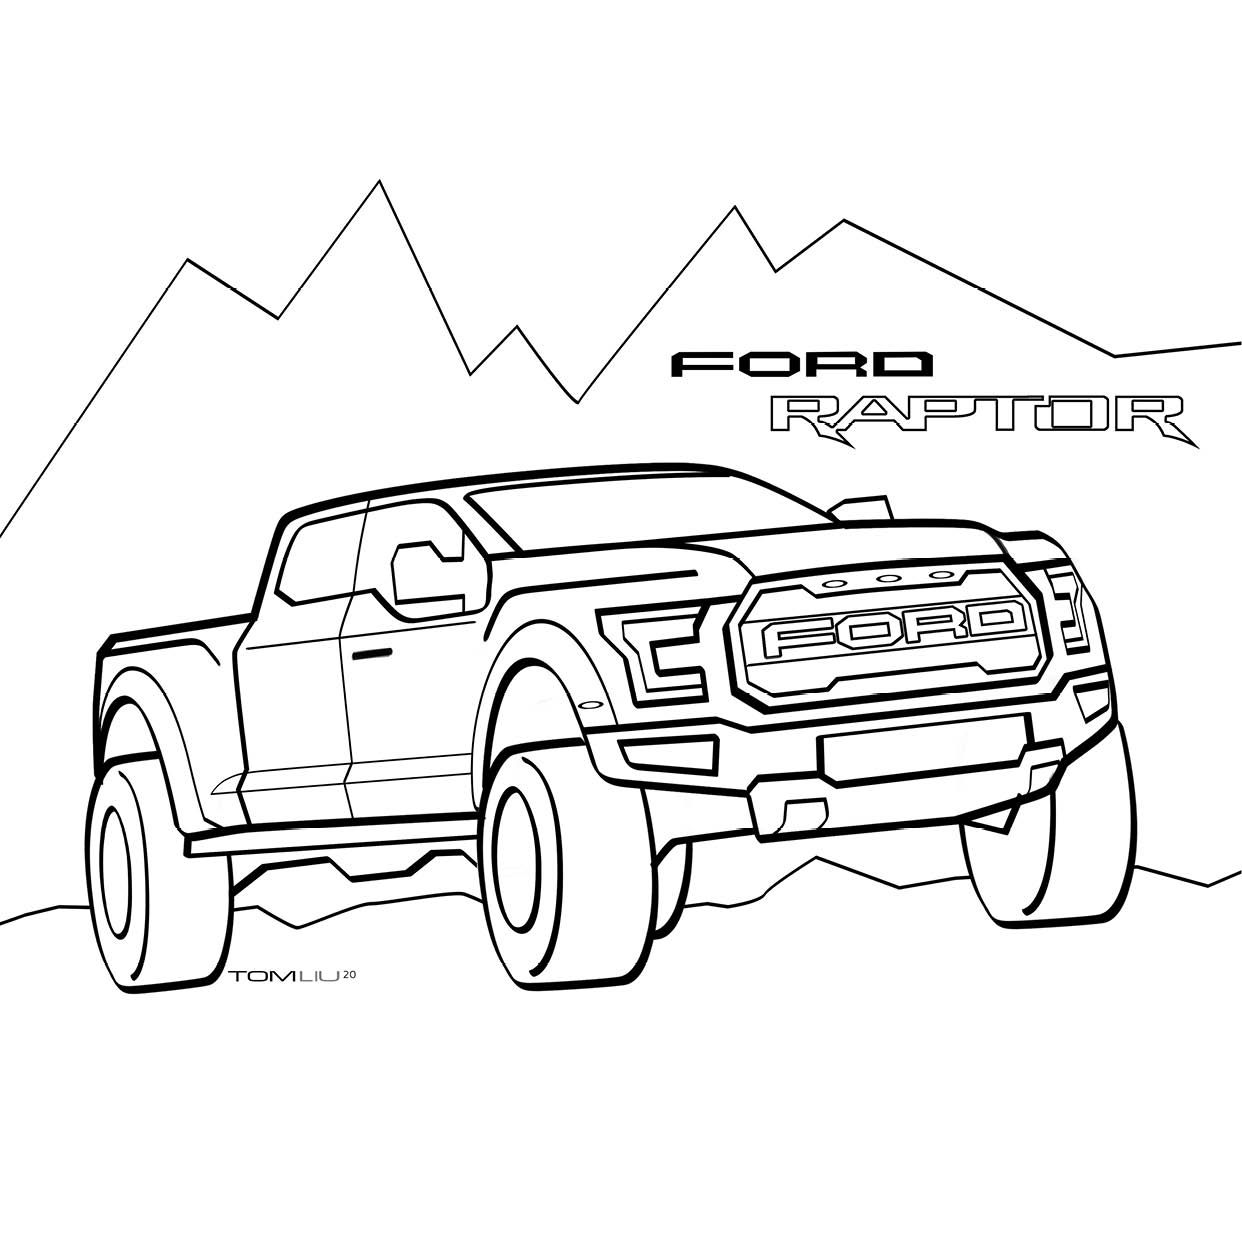 Ford F150 Coloring Page - Ford Pickup Truck For Coloring ... | 1242x1242